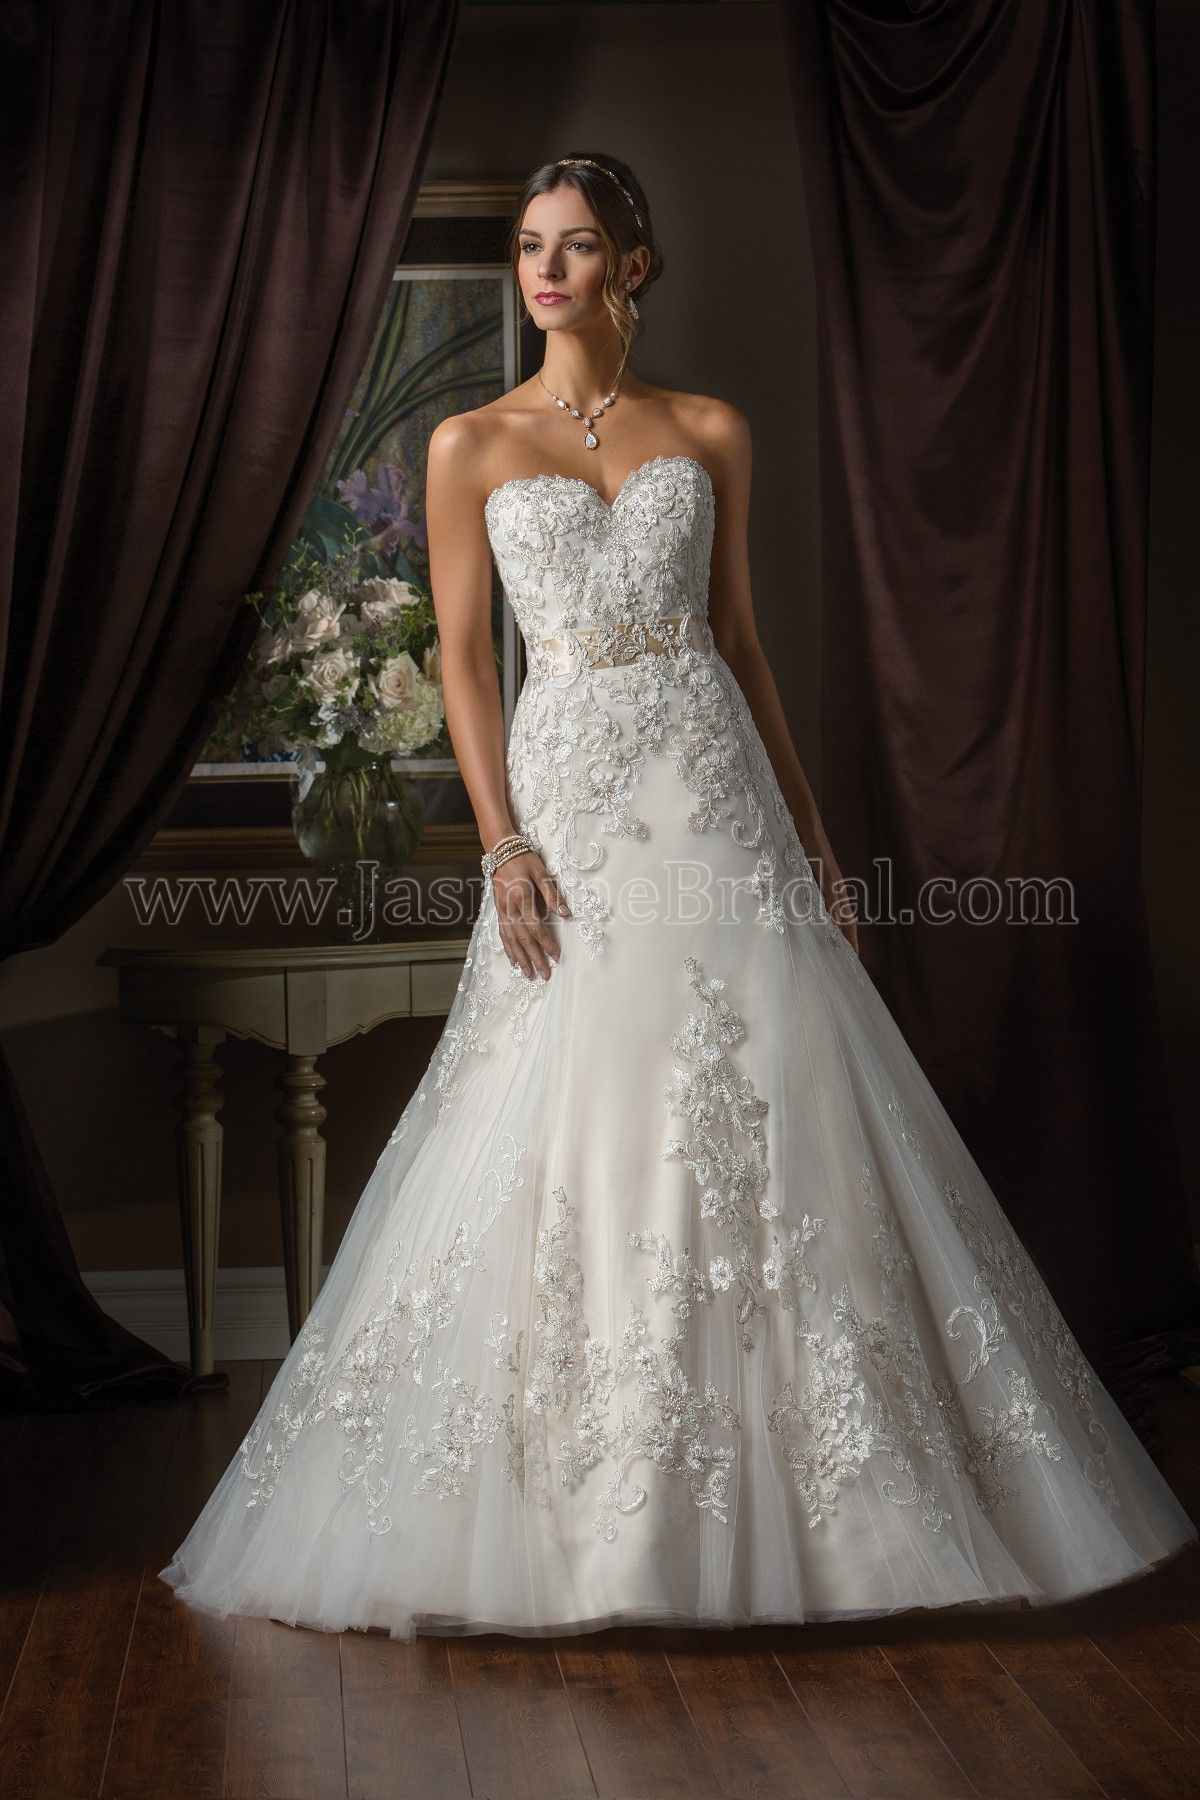 Jasmine couture wedding dress style t172010 in ivory gold for Jasmine couture wedding dress